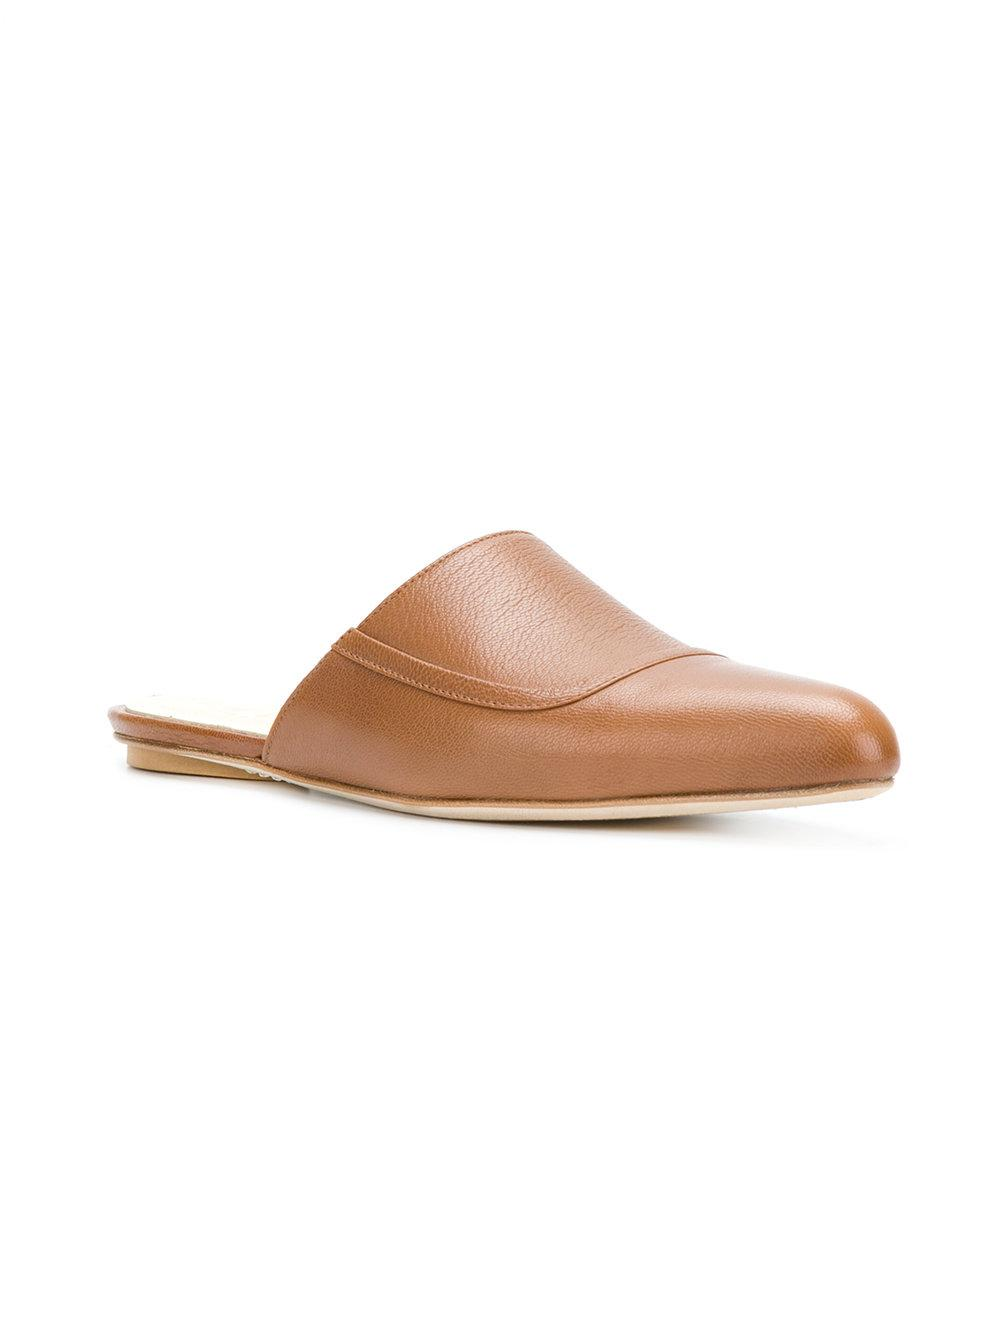 Marni Sabot Leather Slipper In Nude